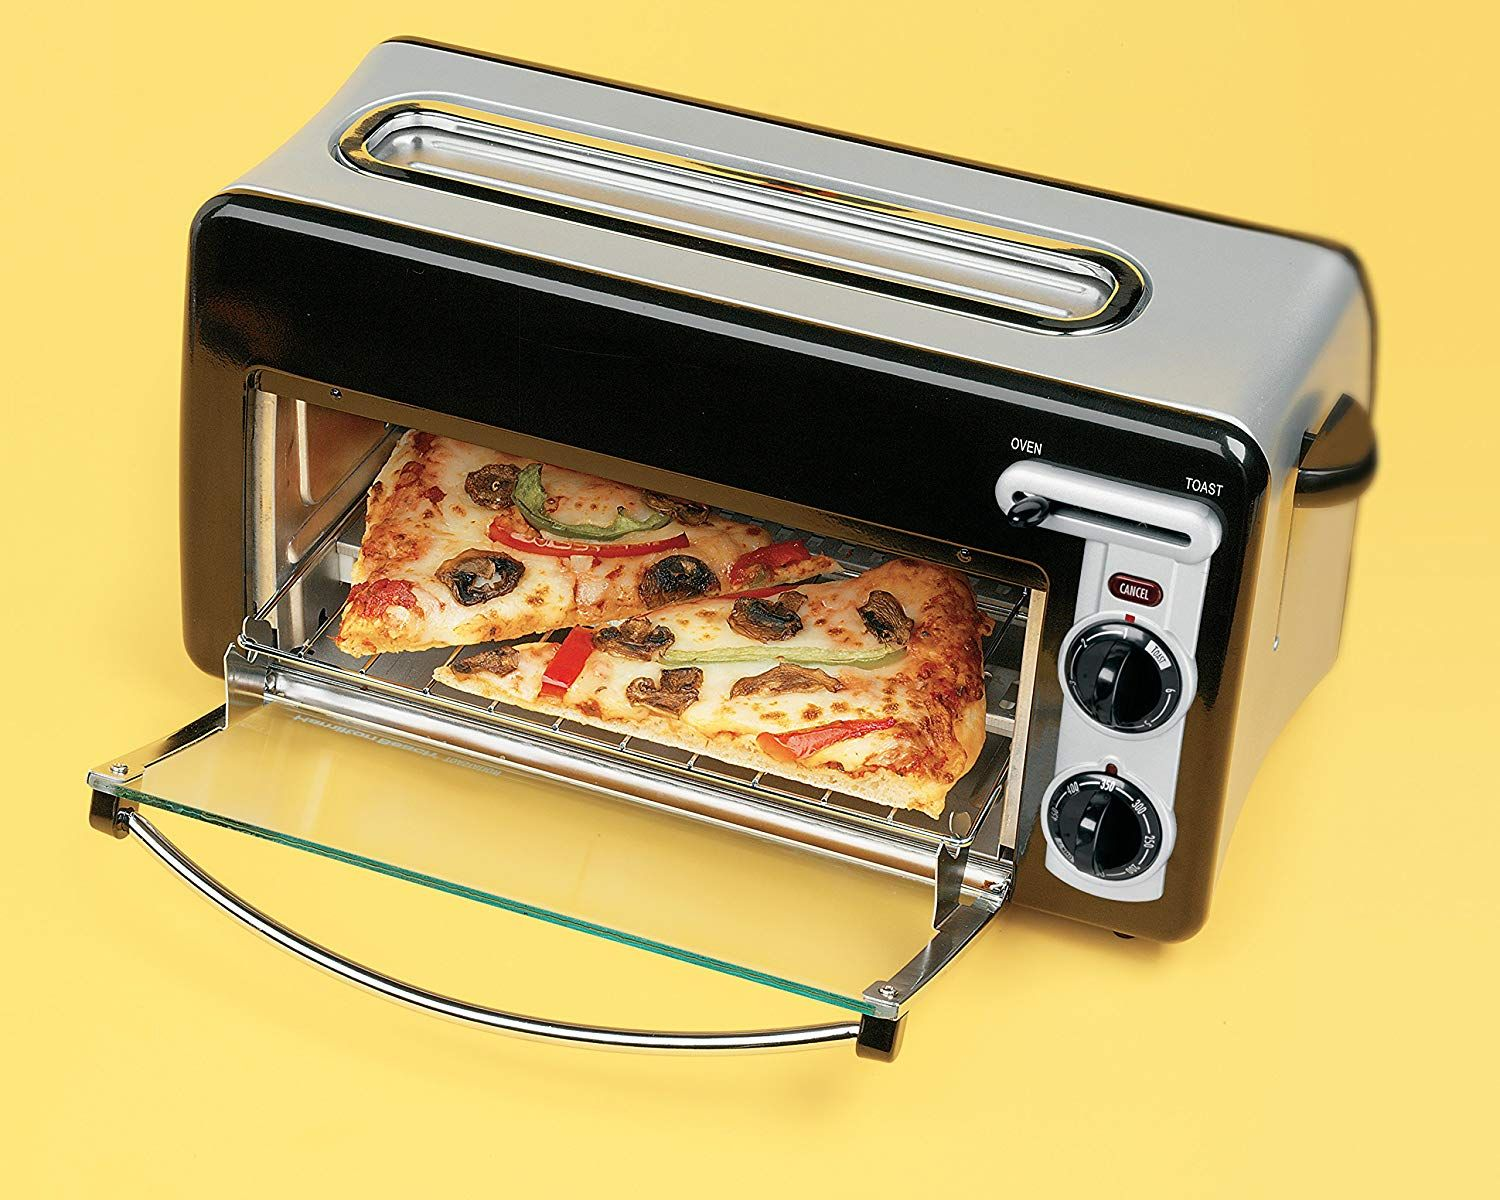 Hamilton Beach Toastation 2 Slice Toaster And Countertop Oven